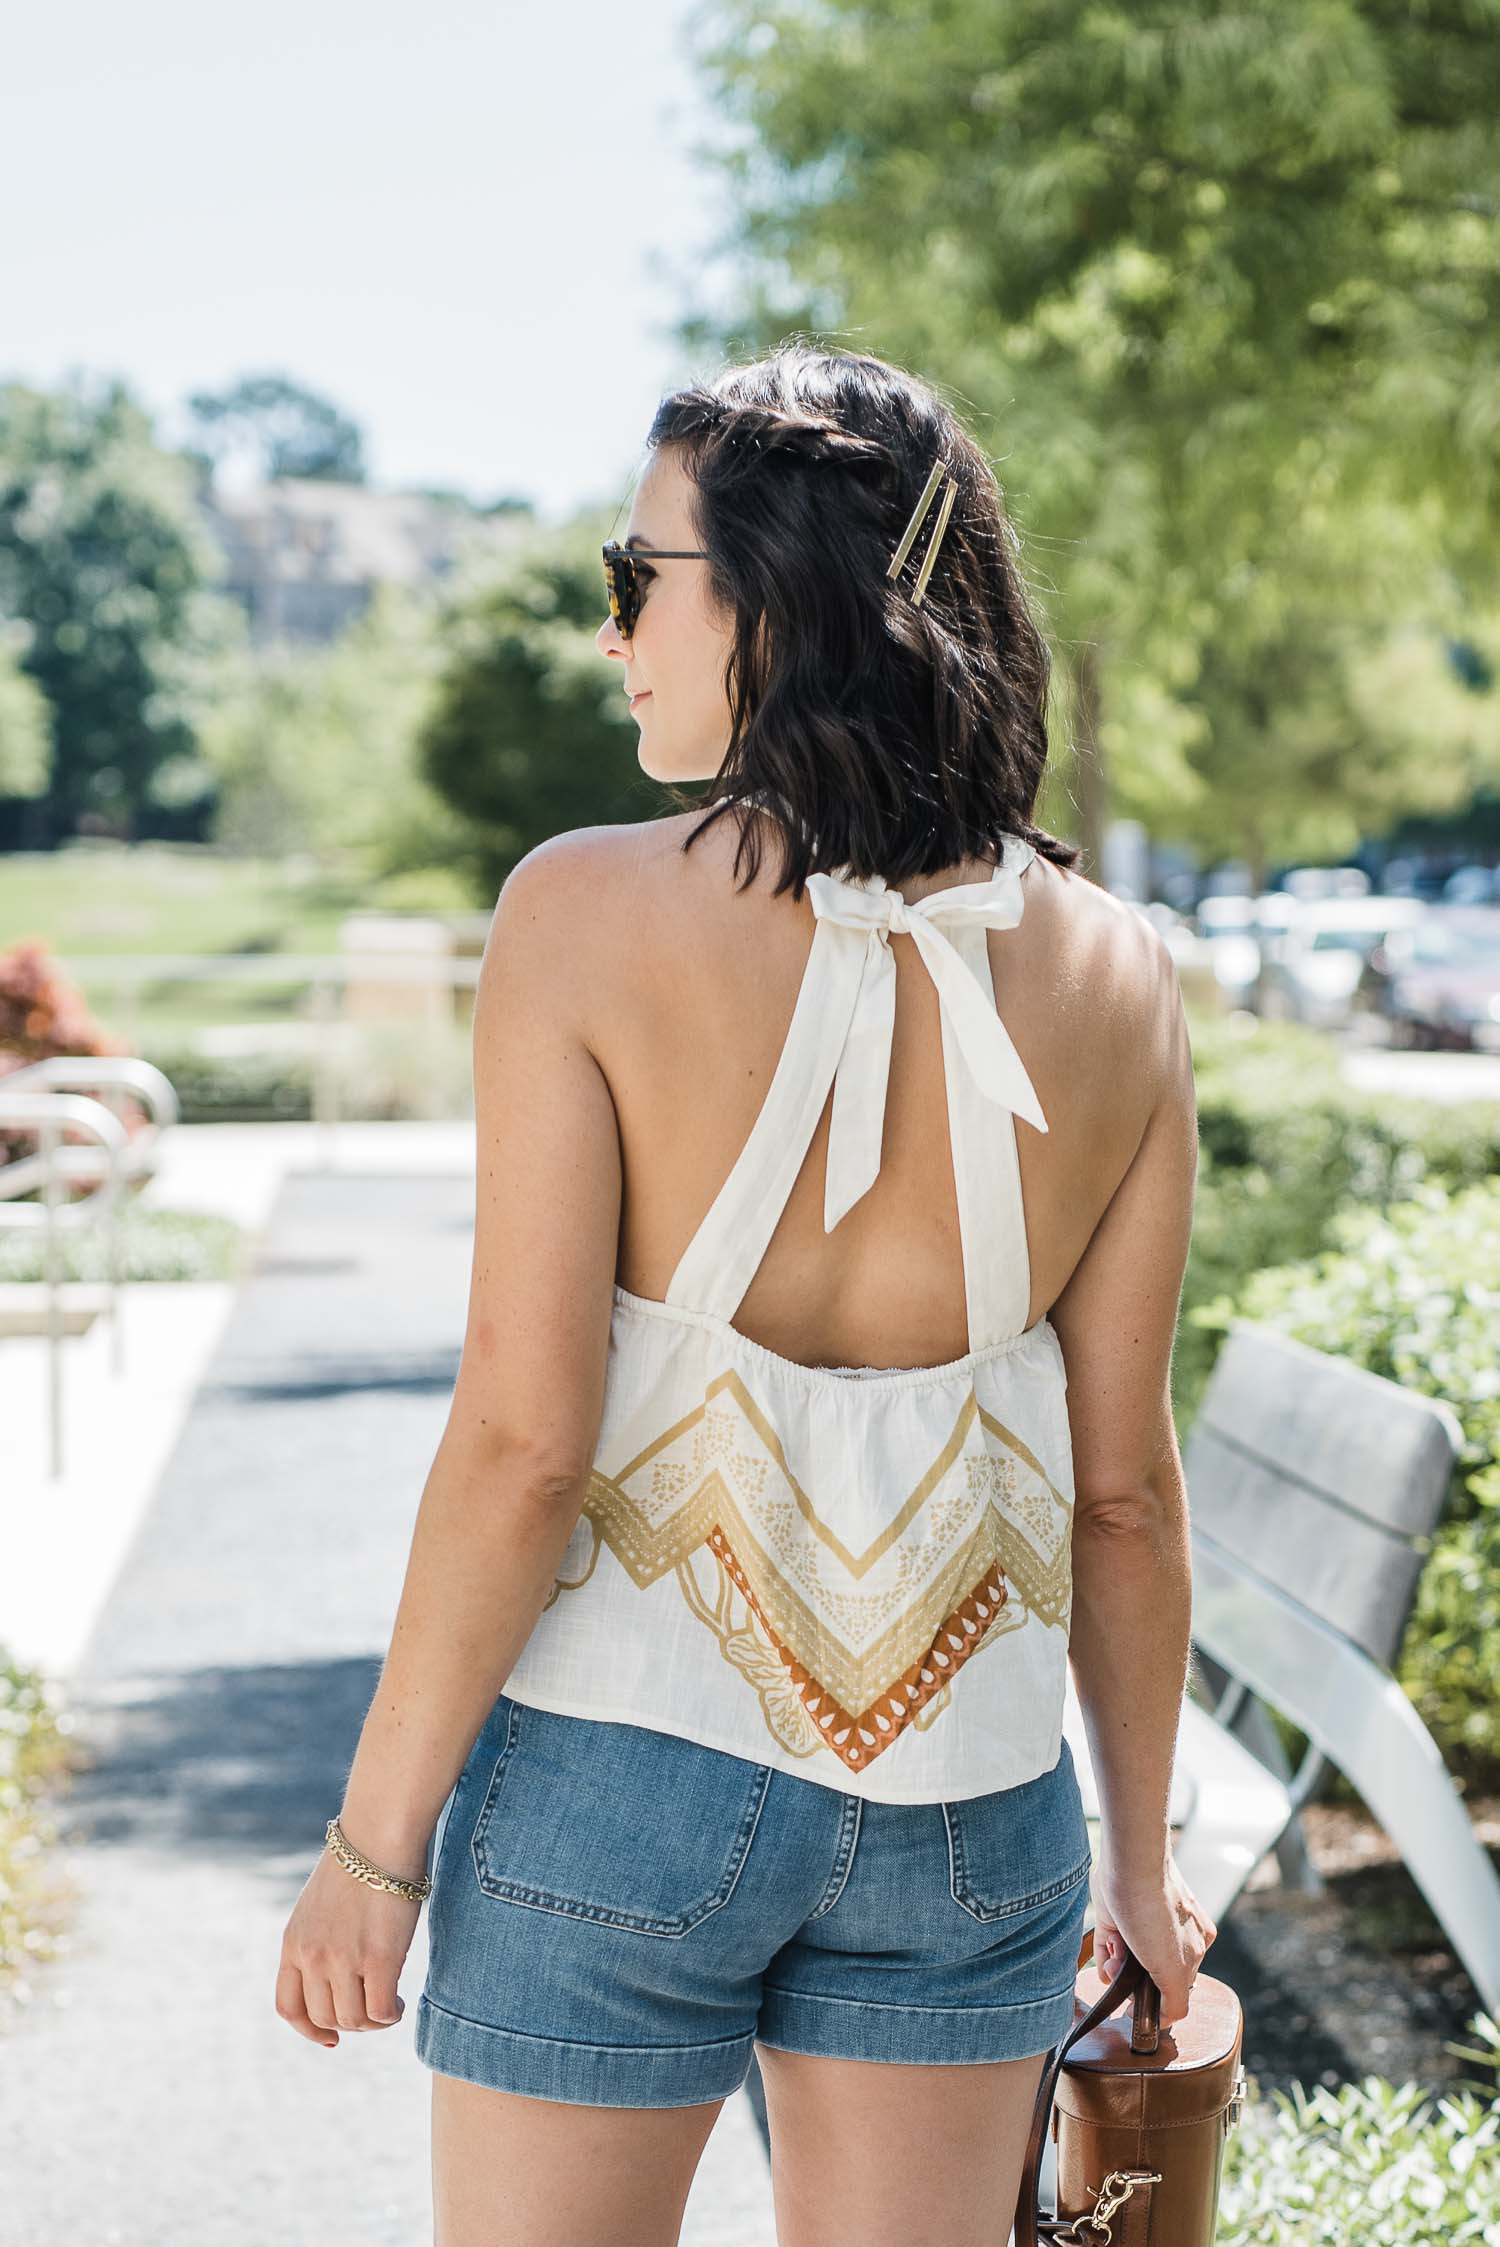 FREE PEOPLE CABANA TOP FEATURED